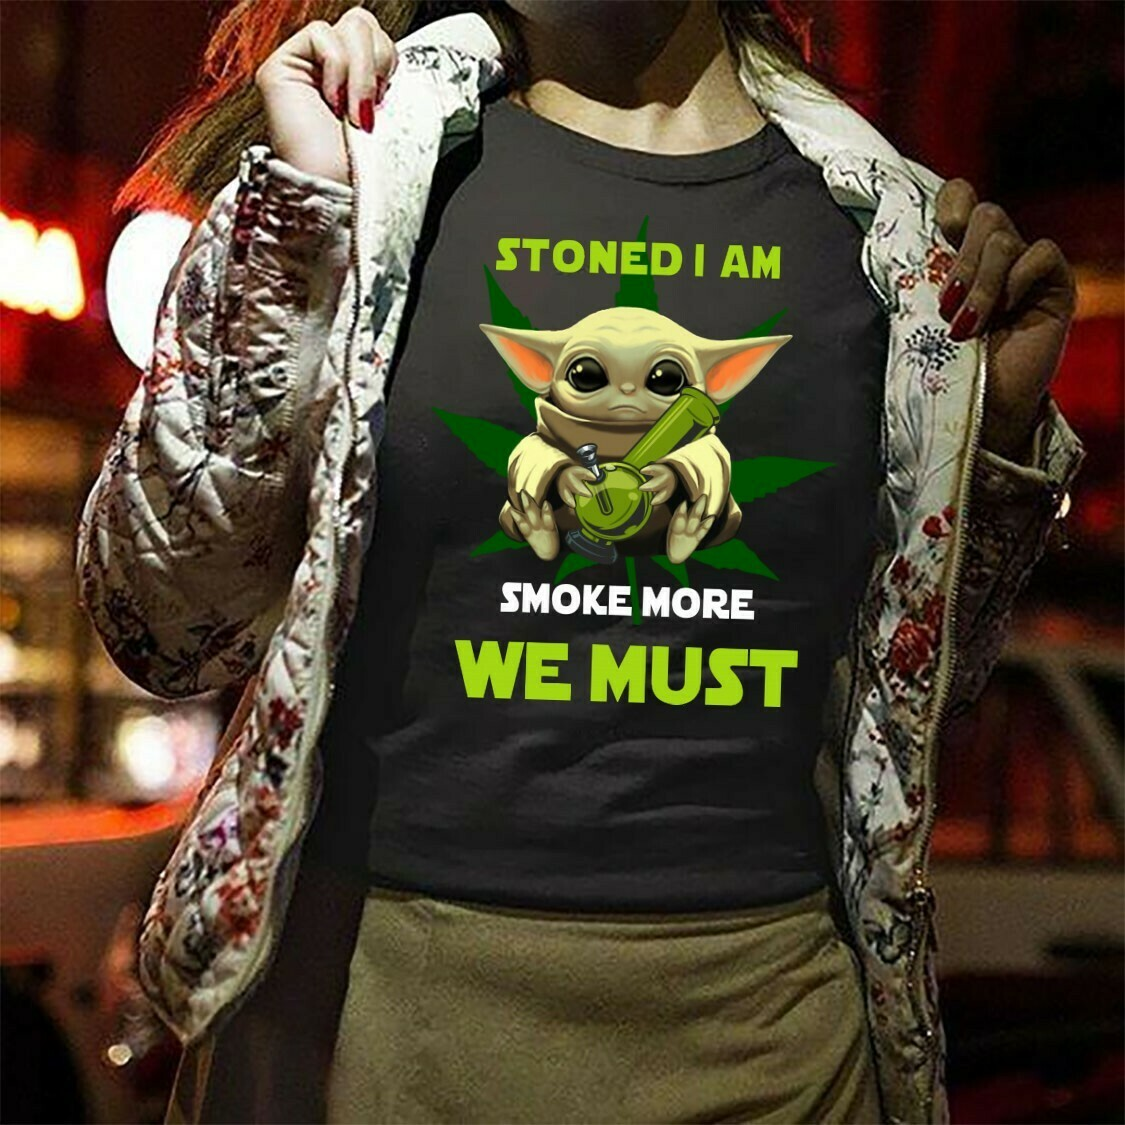 Baby Yoda Stoned I Am Smoke More We Must,Star Wars The Child The Manadorian Adopt This Jedi Funny Gift T-Shirt Long Sleeve Sweatshirt Hoodie Jolly Family Gifts